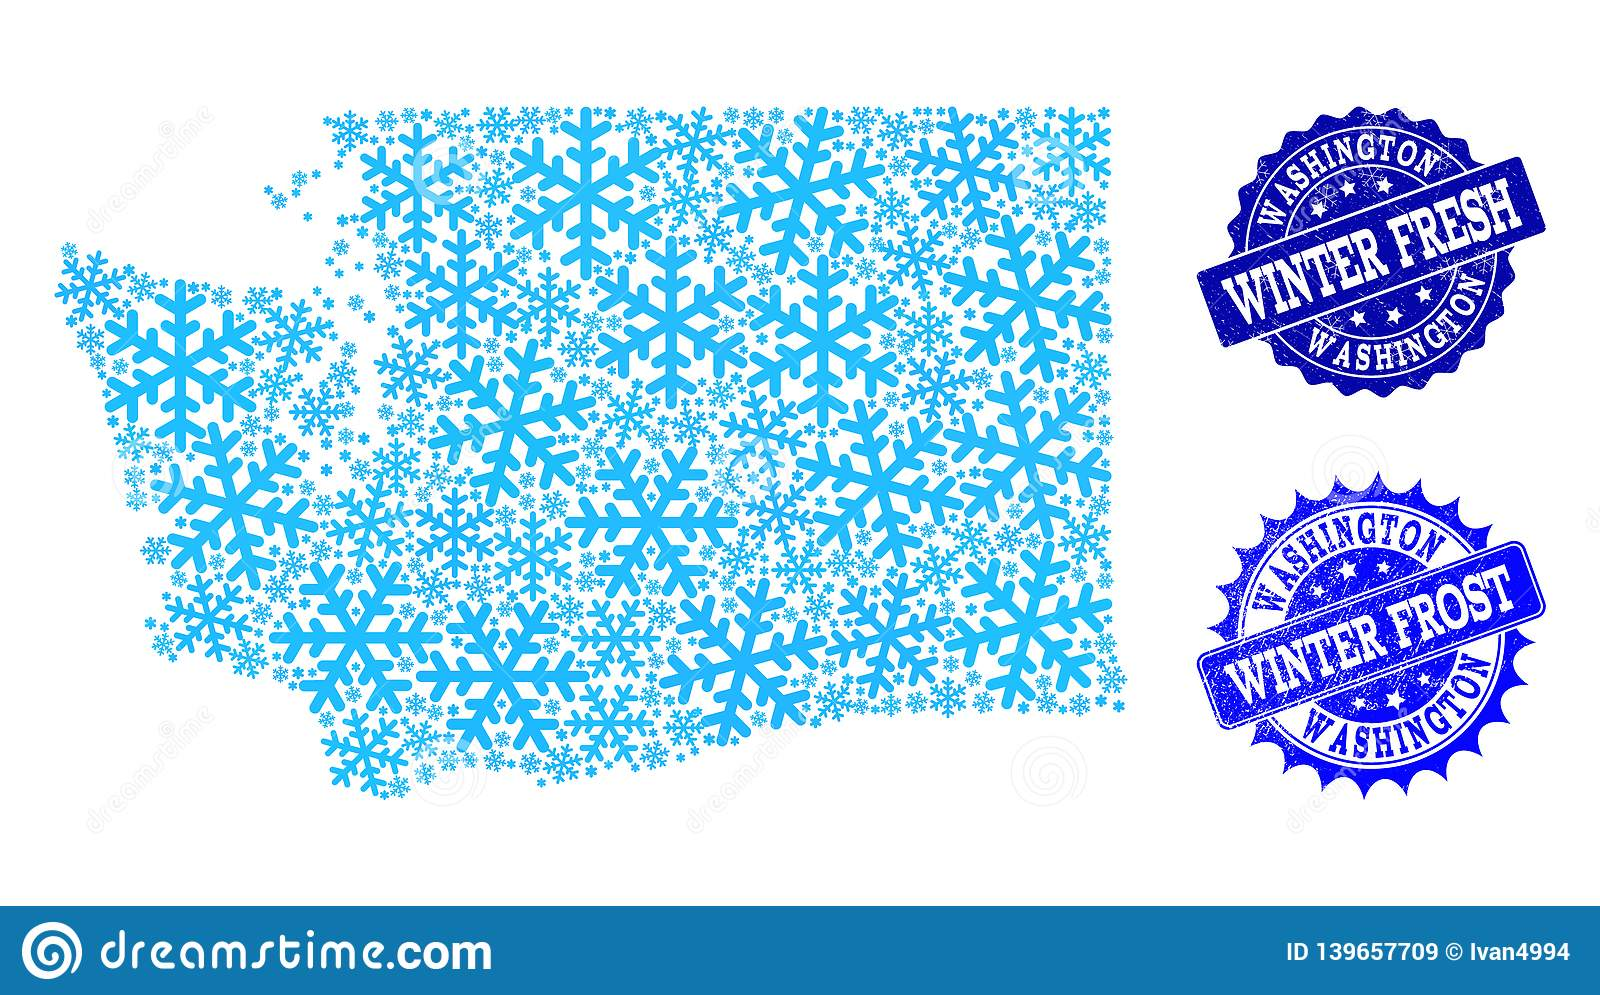 Frost Map of Washington State and Winter Fresh and Frost Grunge Stamps